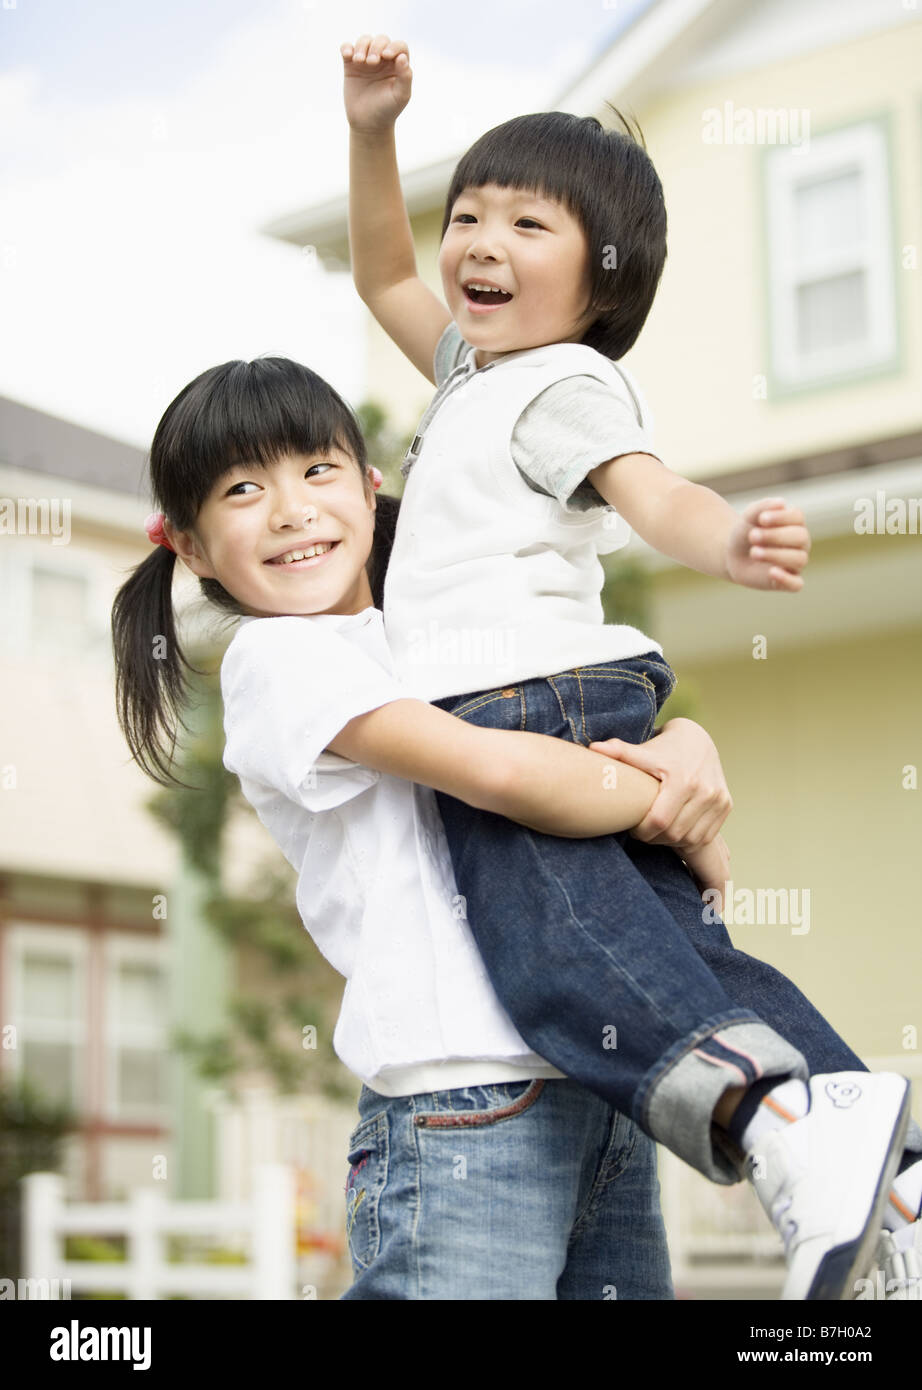 Sister lifting up younger brother Stock Photo